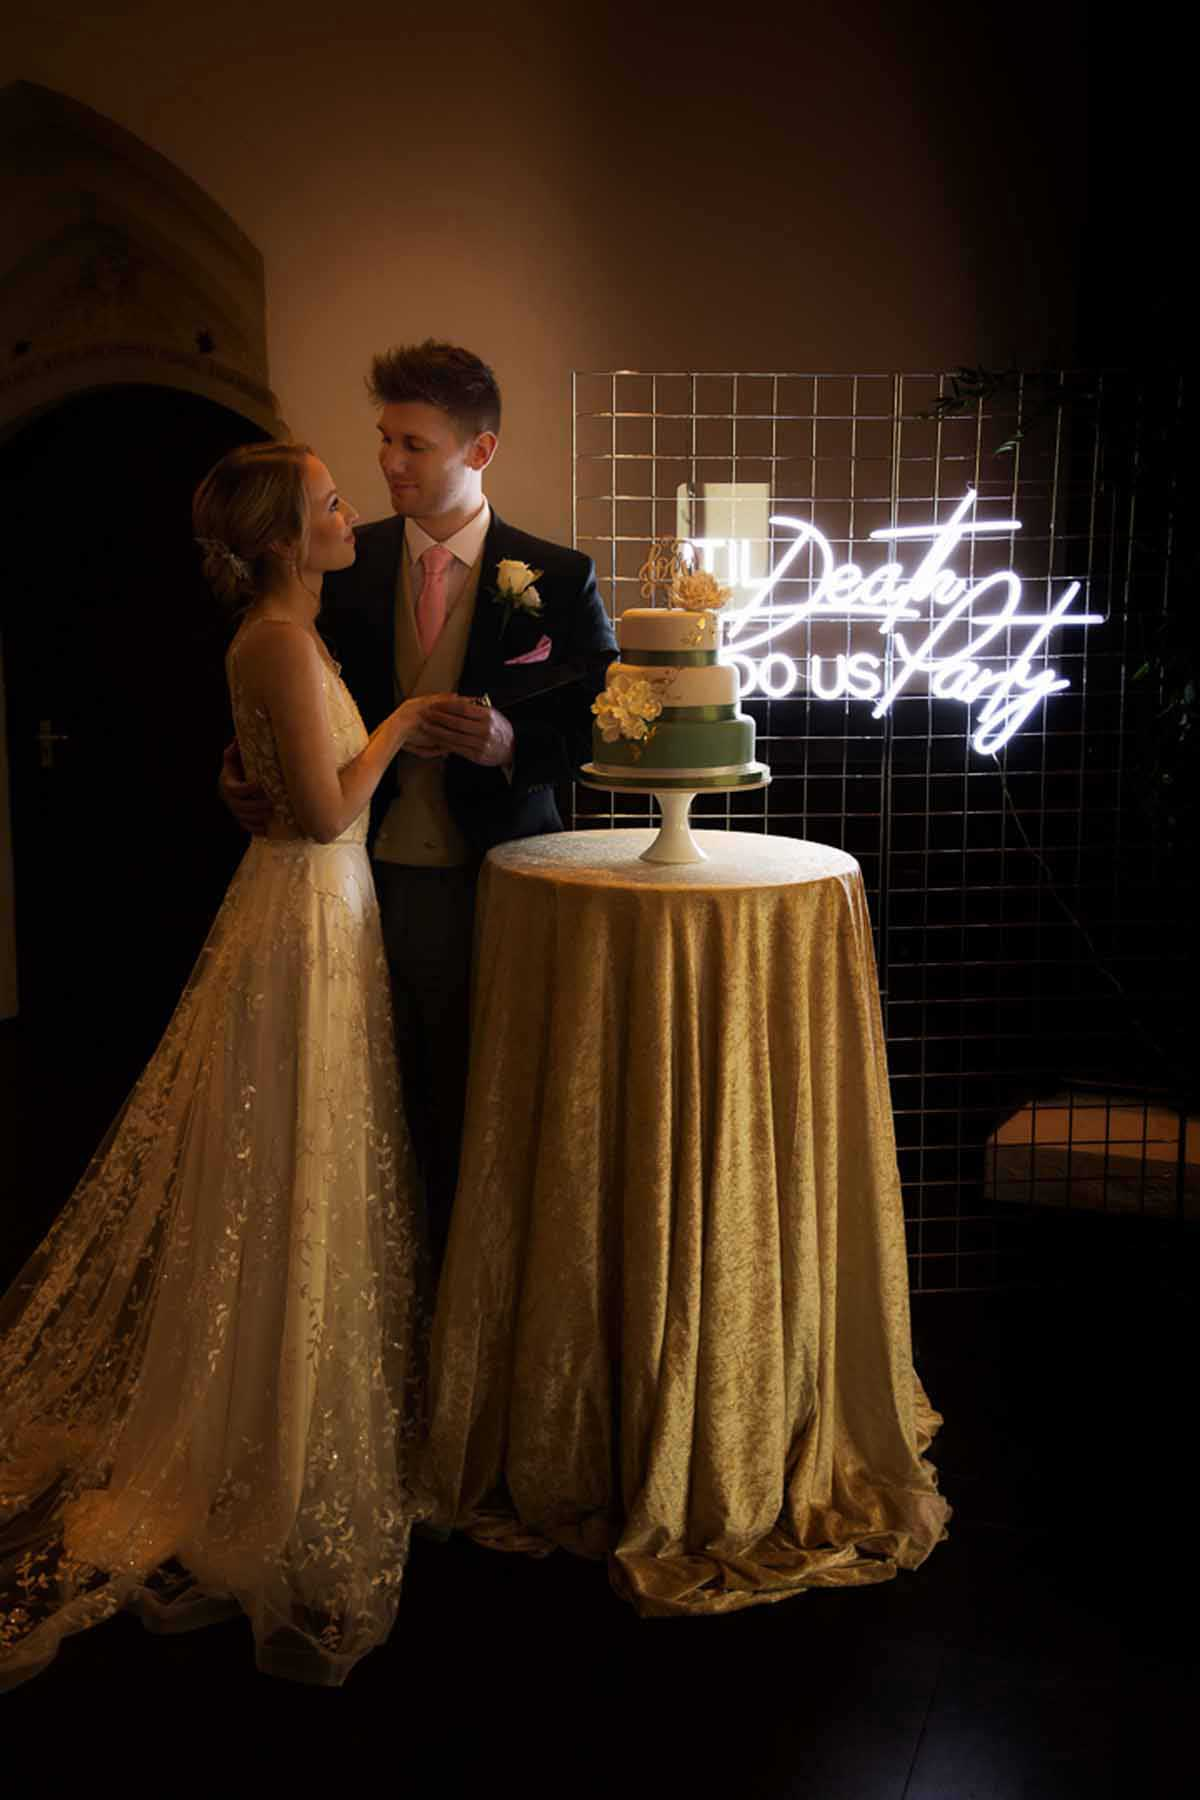 bride and groom about to cut the cake next to a neon sign